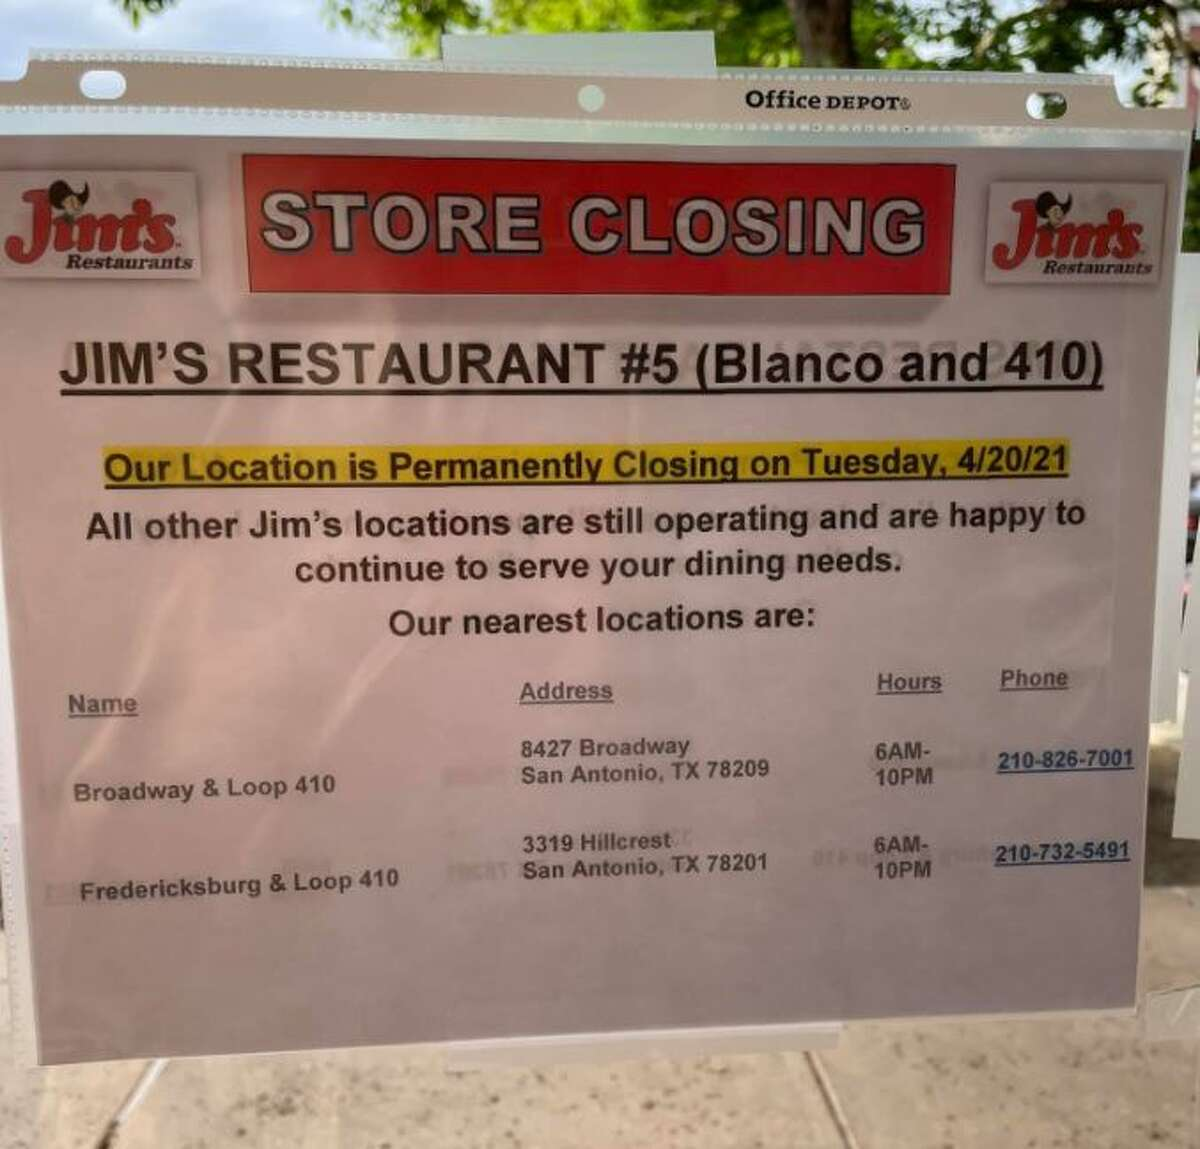 On Monday, Lara Turner snapped a picture of the note taped on the doors of the Jim's location on Blanco and Loop 410.